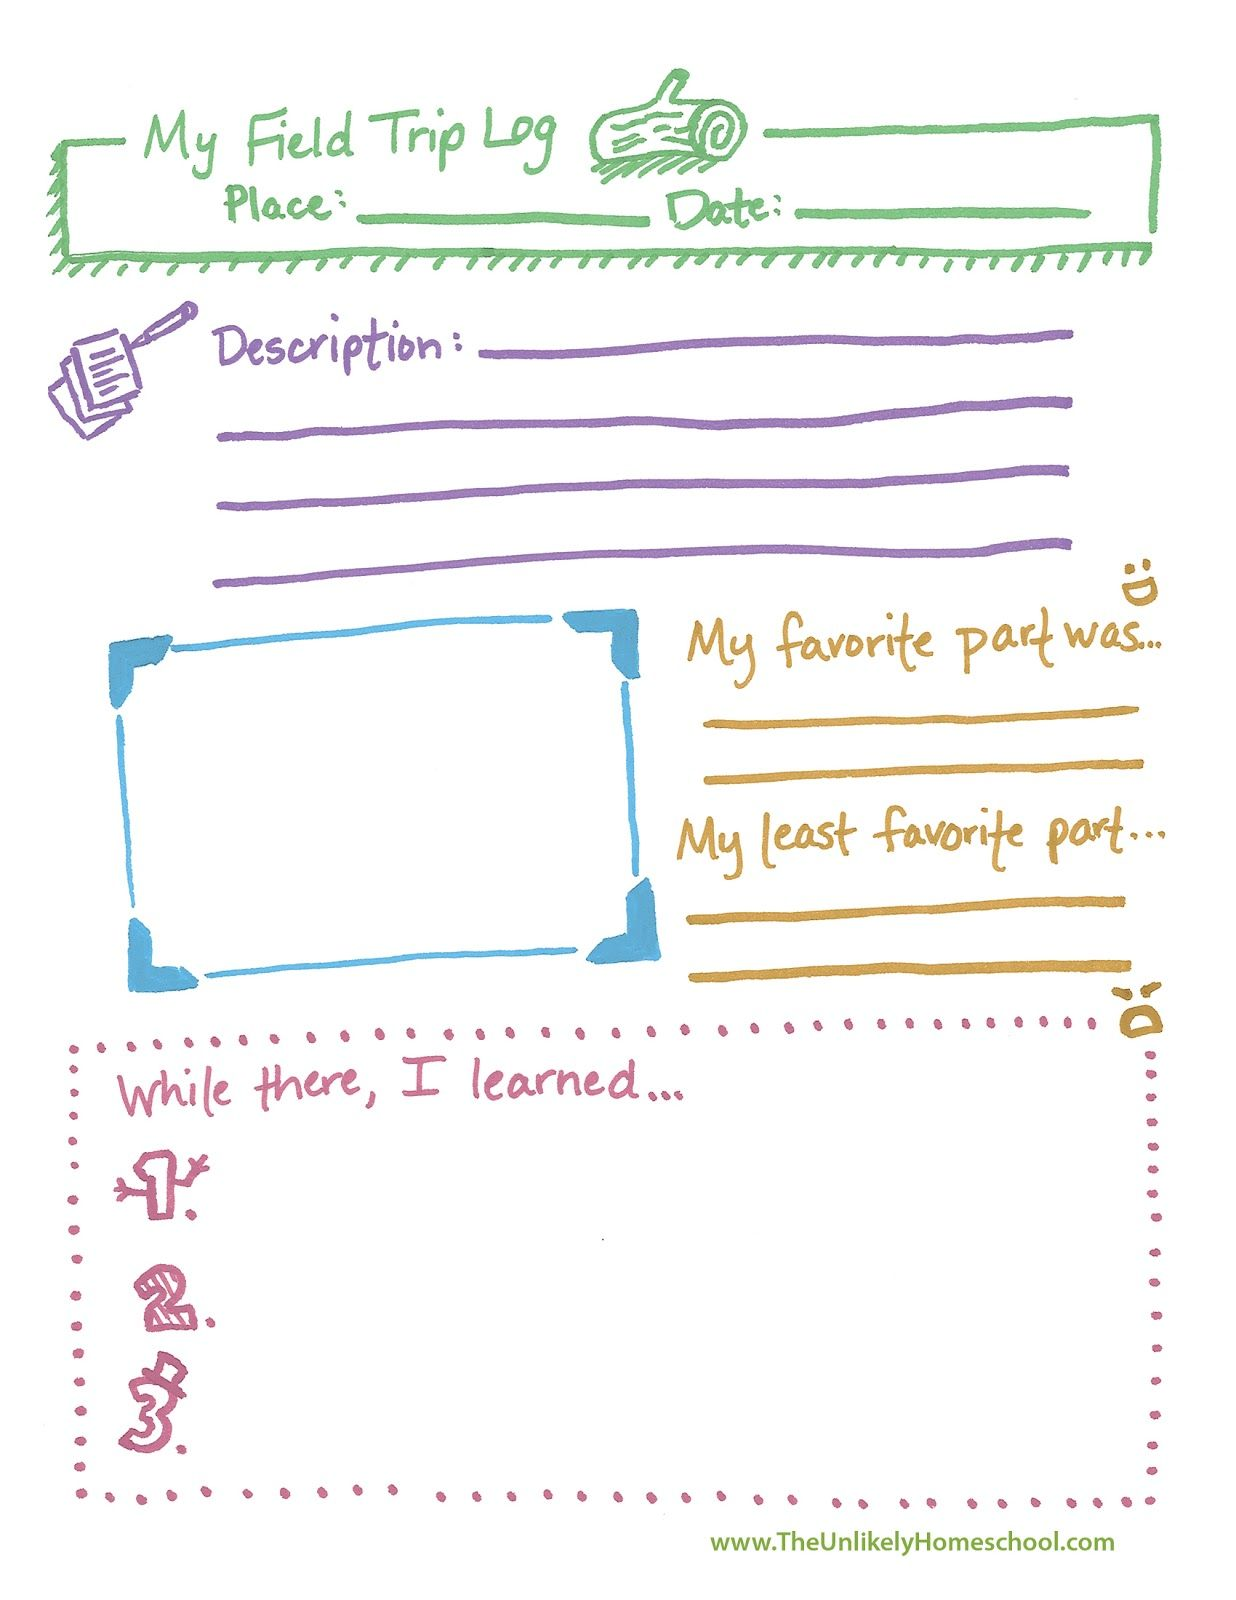 Free Field Trip Log Printable